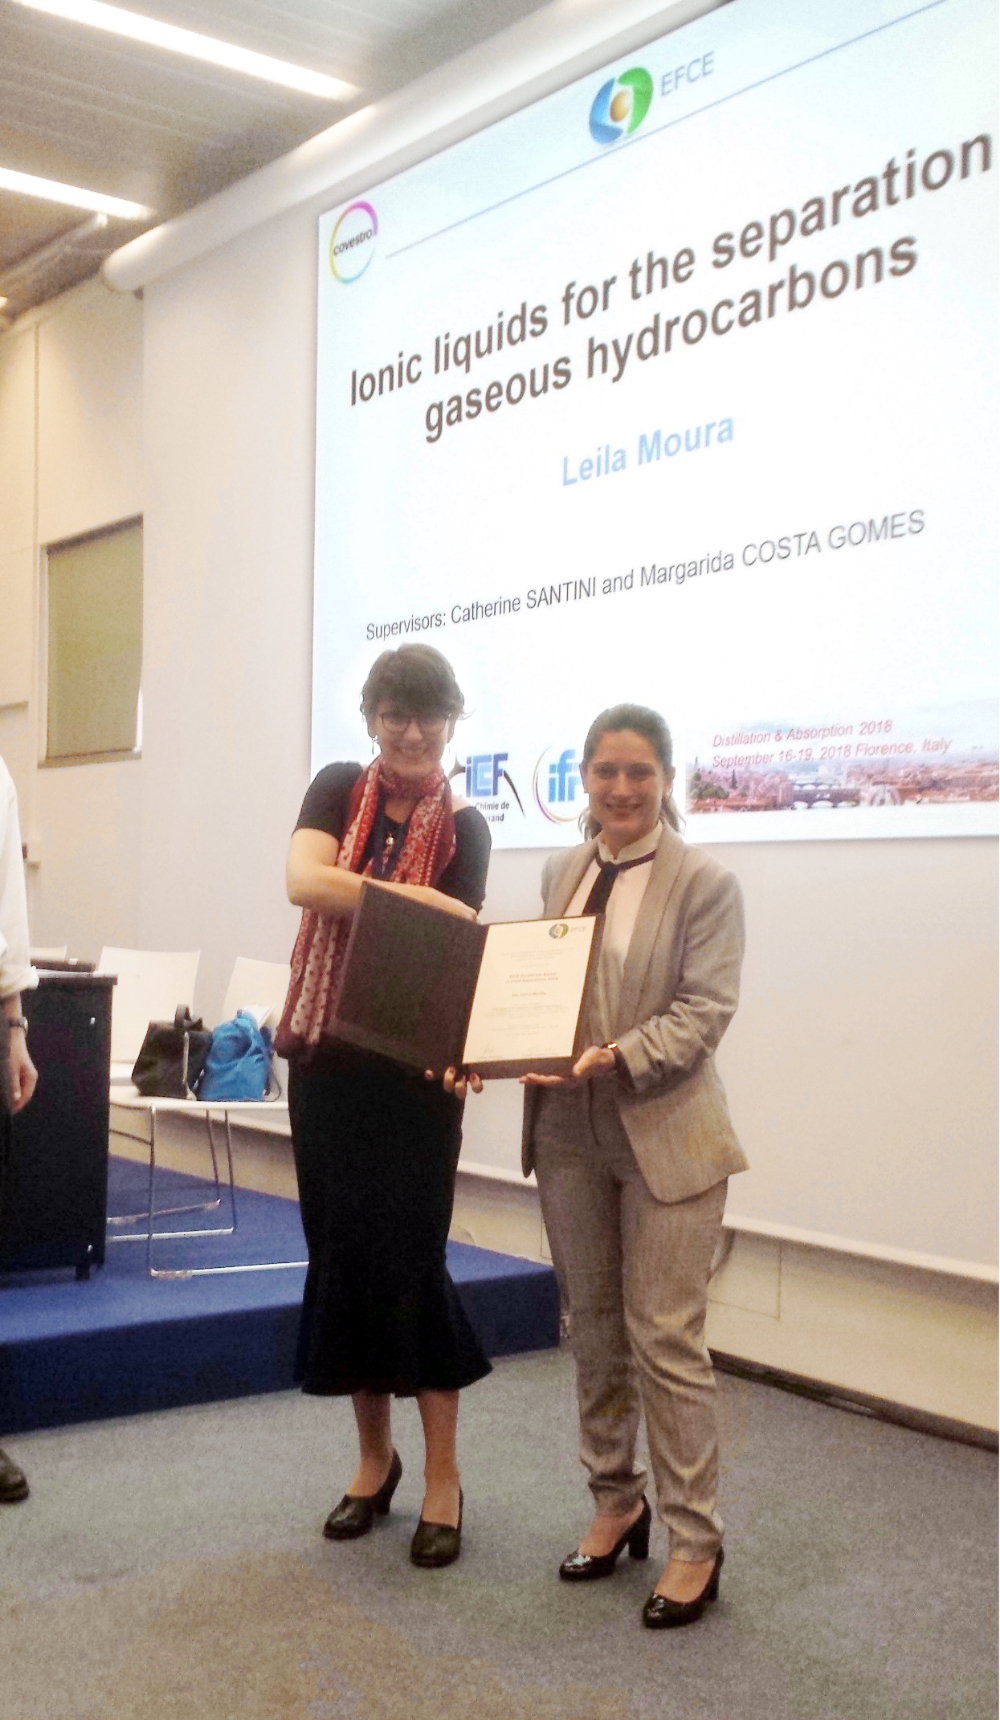 At the Destillation & Absorption Congress, Dr. Leila Moura (to the right) received the EFCE Excellence award in Fluid Separations from dr. Magdalena Bendova